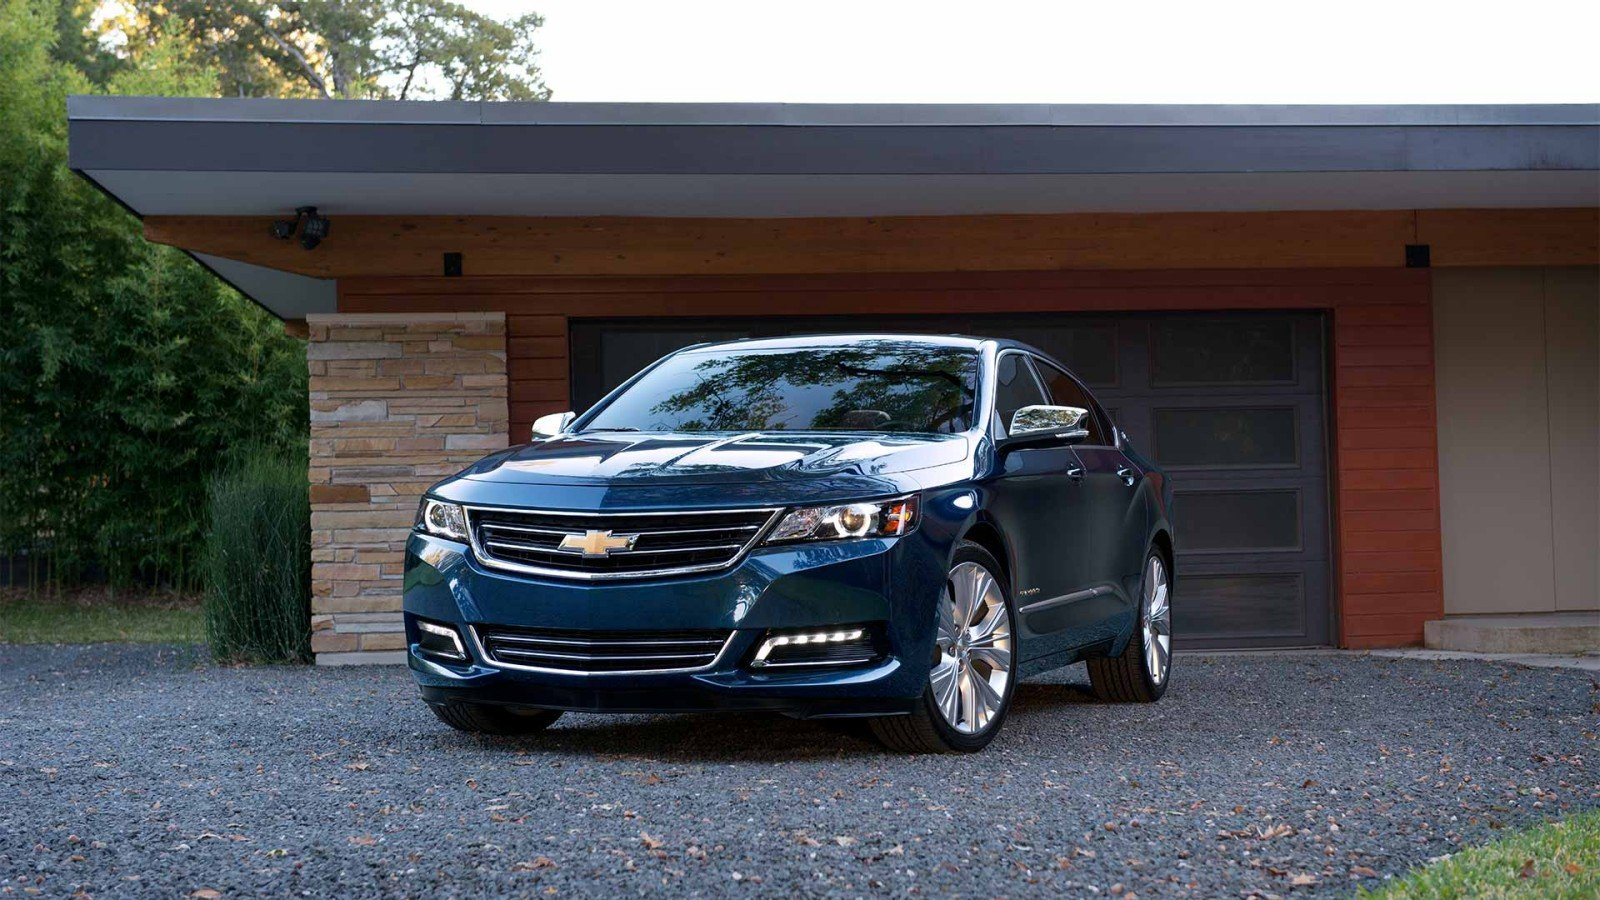 New Chevrolet Impala For Sale Wexford PA